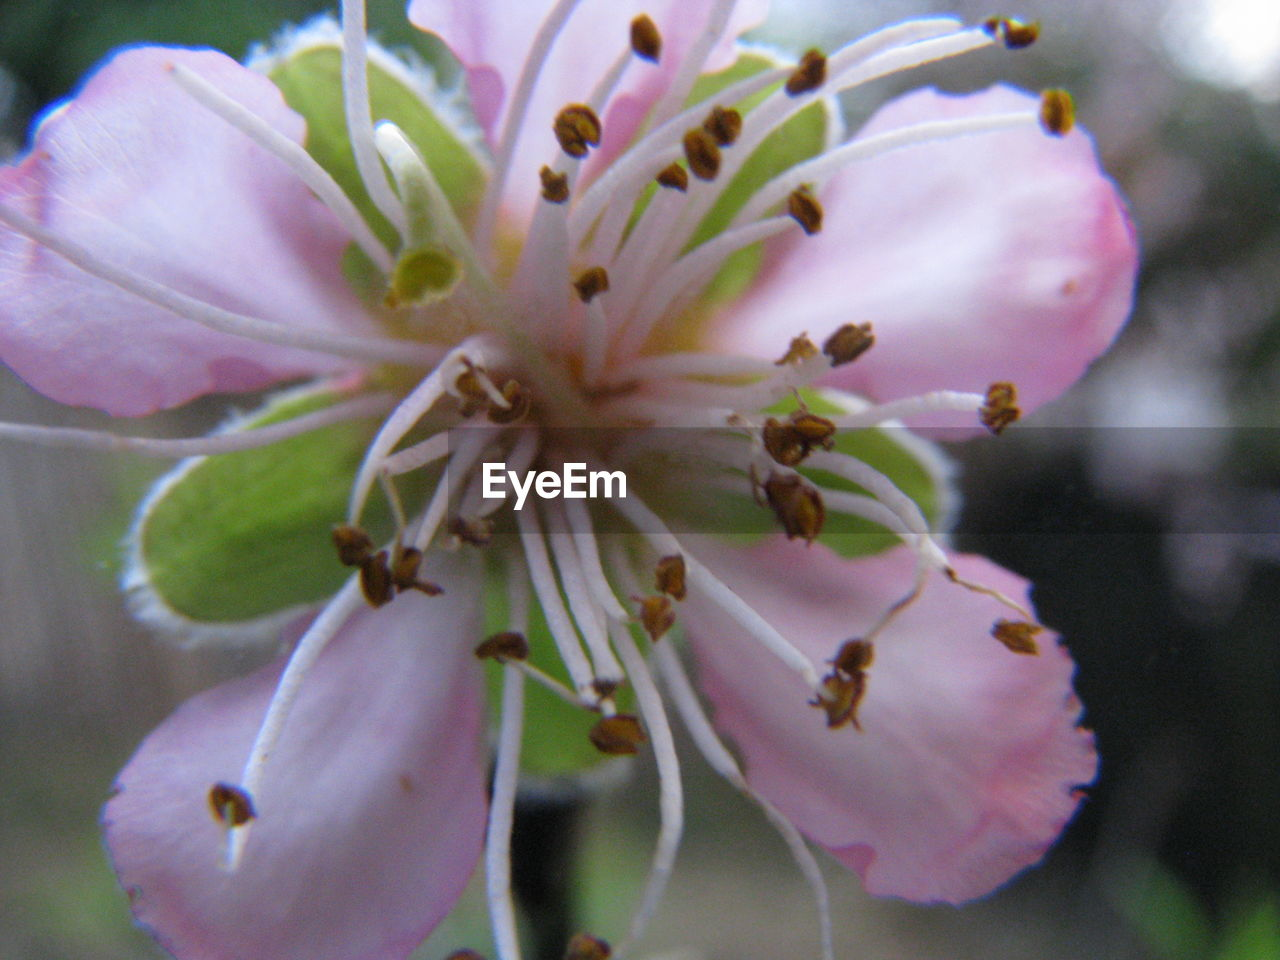 flower, petal, growth, fragility, flower head, beauty in nature, stamen, blossom, nature, springtime, pollen, freshness, close-up, no people, selective focus, day, plant, outdoors, pink color, tree, blooming, branch